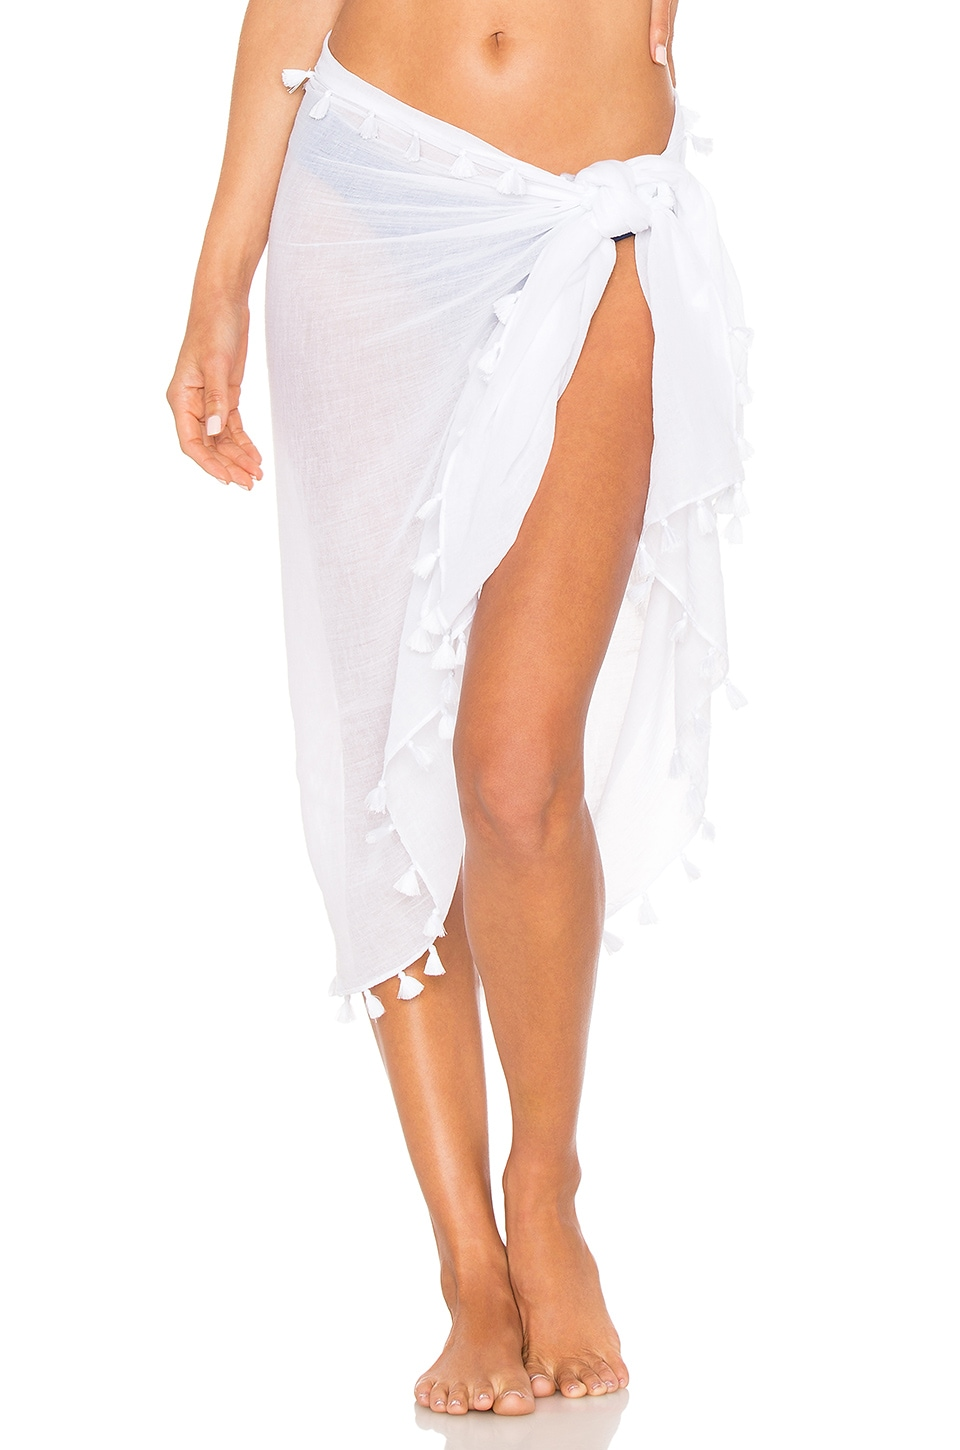 Seafolly Pom Pom Sarong in White